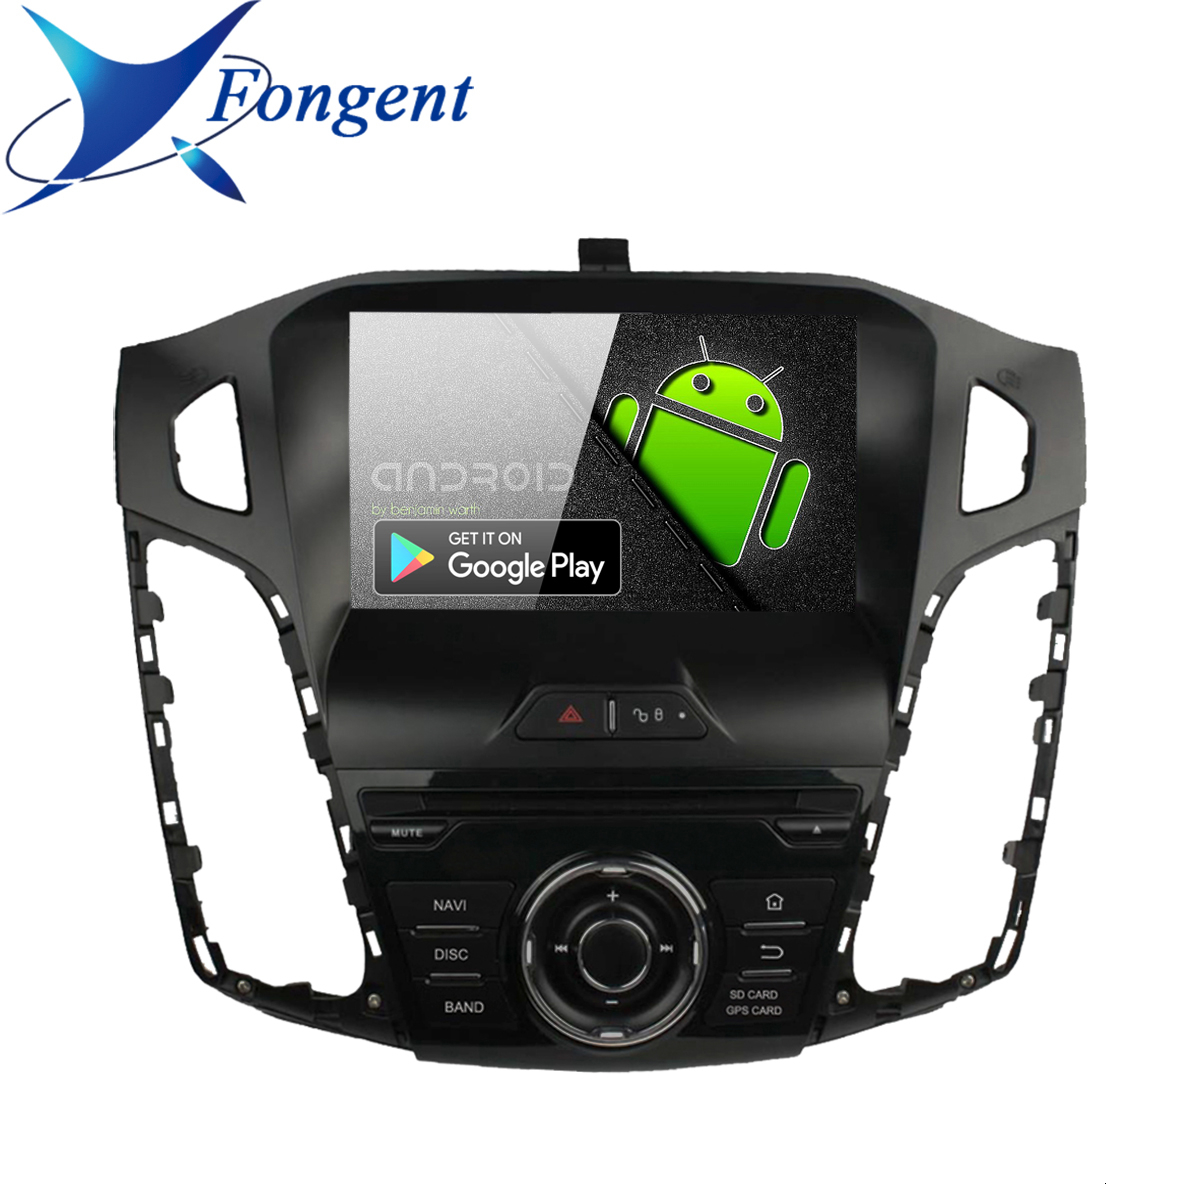 For <font><b>Ford</b></font> 2011 2012 2013 2014 2015 2016 <font><b>2017</b></font> 2018 <font><b>Focus</b></font> Android Car DVD Auto Audio Video Radio FM RDS Stereo GPS <font><b>Navigation</b></font> DSP image